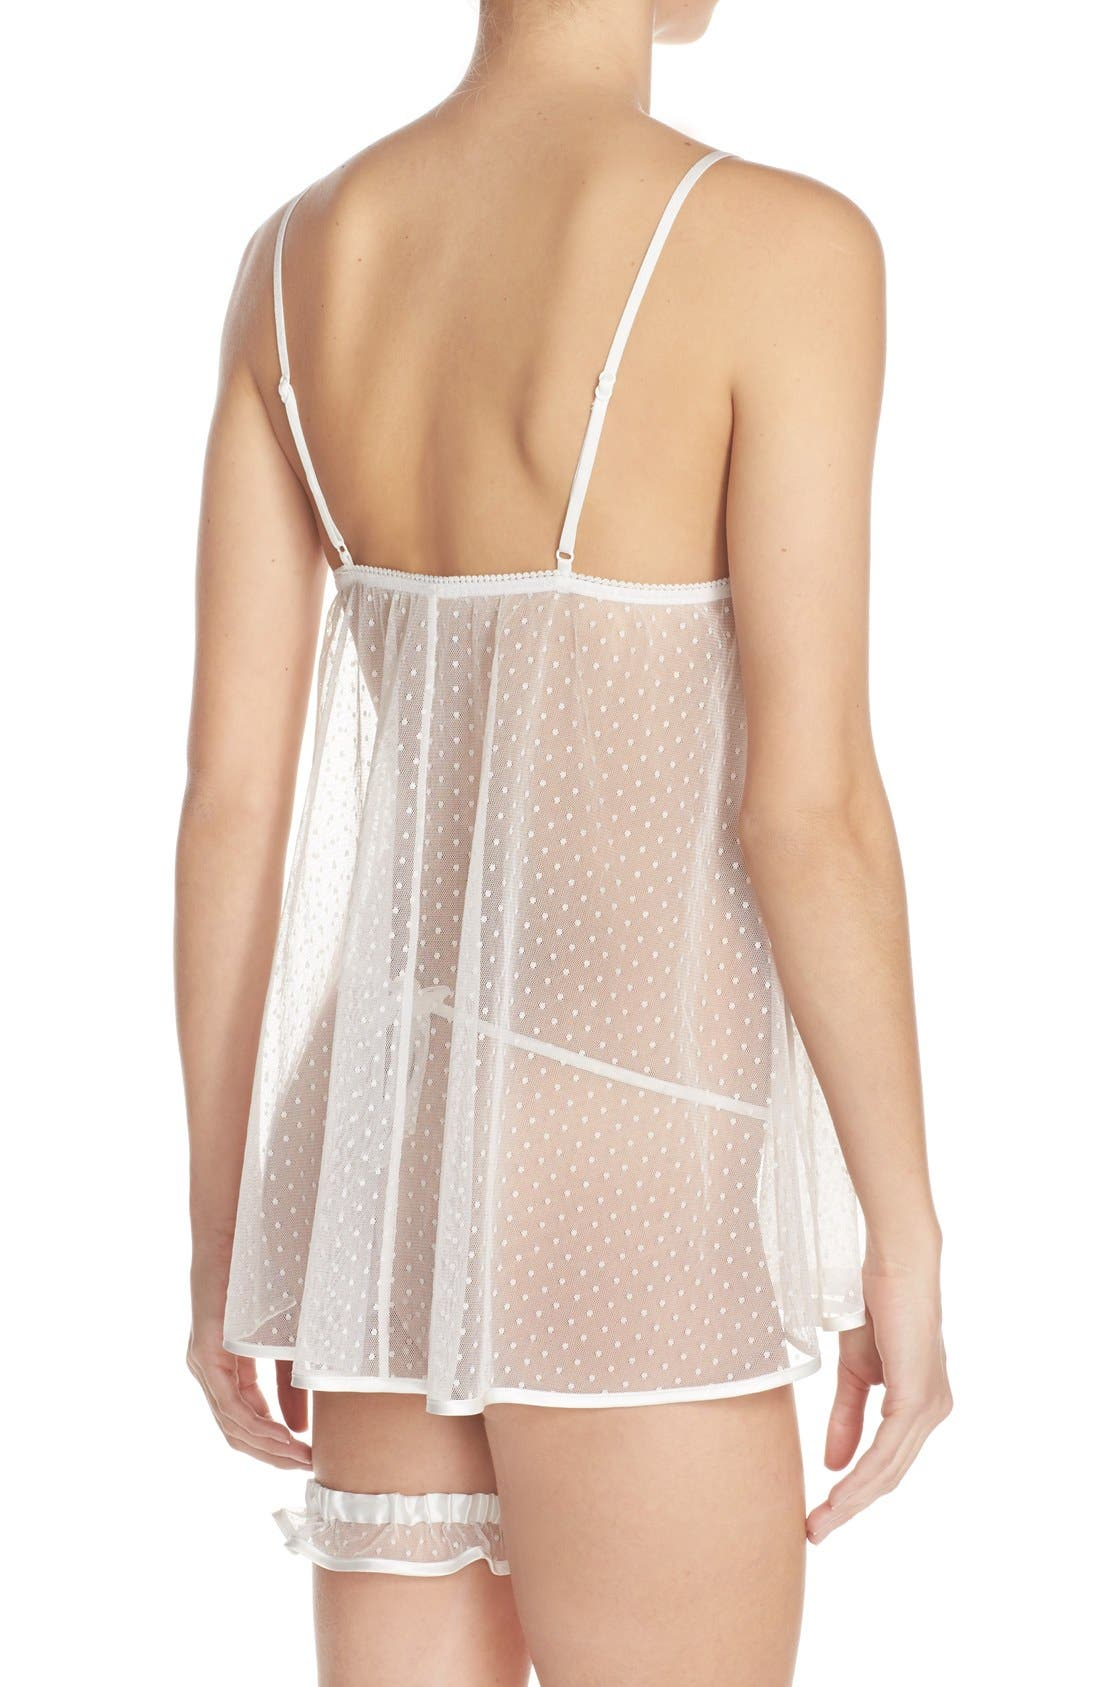 Jennifer Chemise Set,                             Alternate thumbnail 2, color,                             WHITE